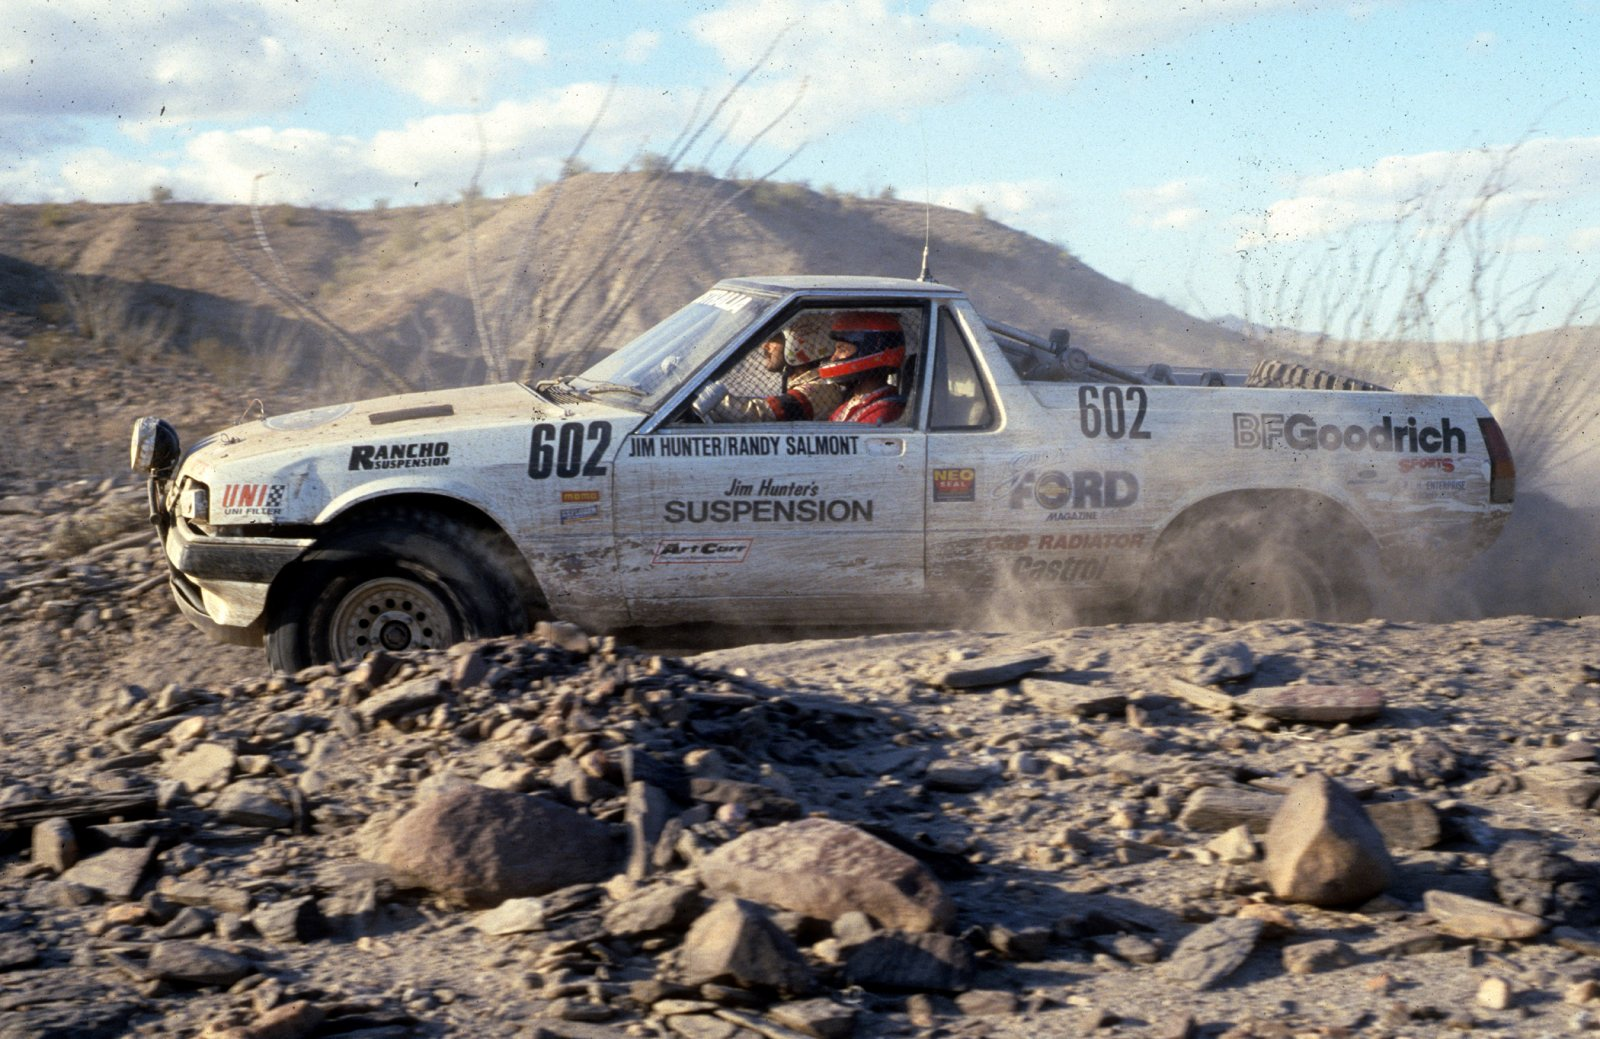 1987.Baja 1000.Hunter.ford australia.602.02.21x.jpg